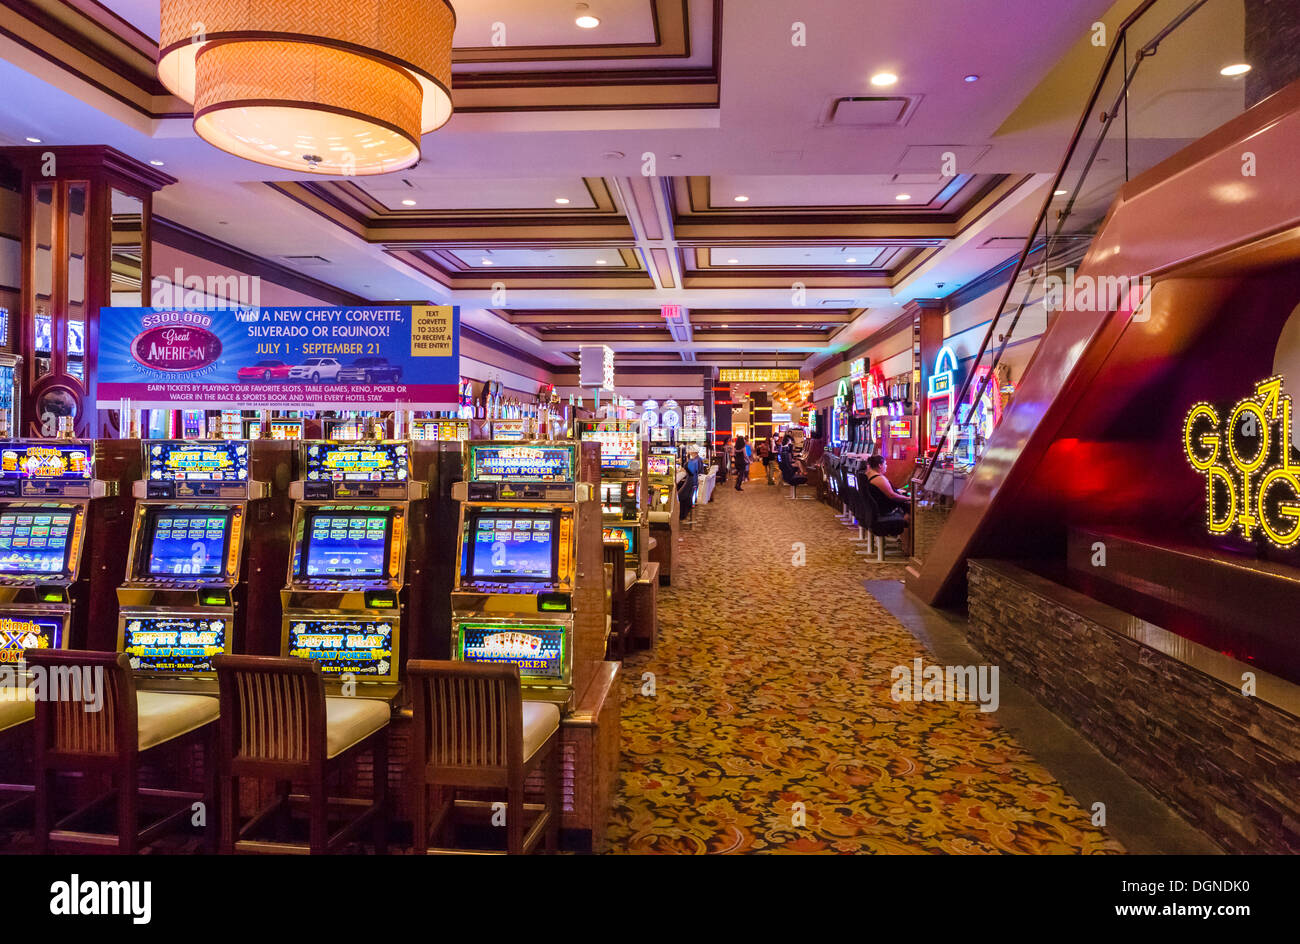 Golden Nugget Slots - Play Online Video Slot Games for Free